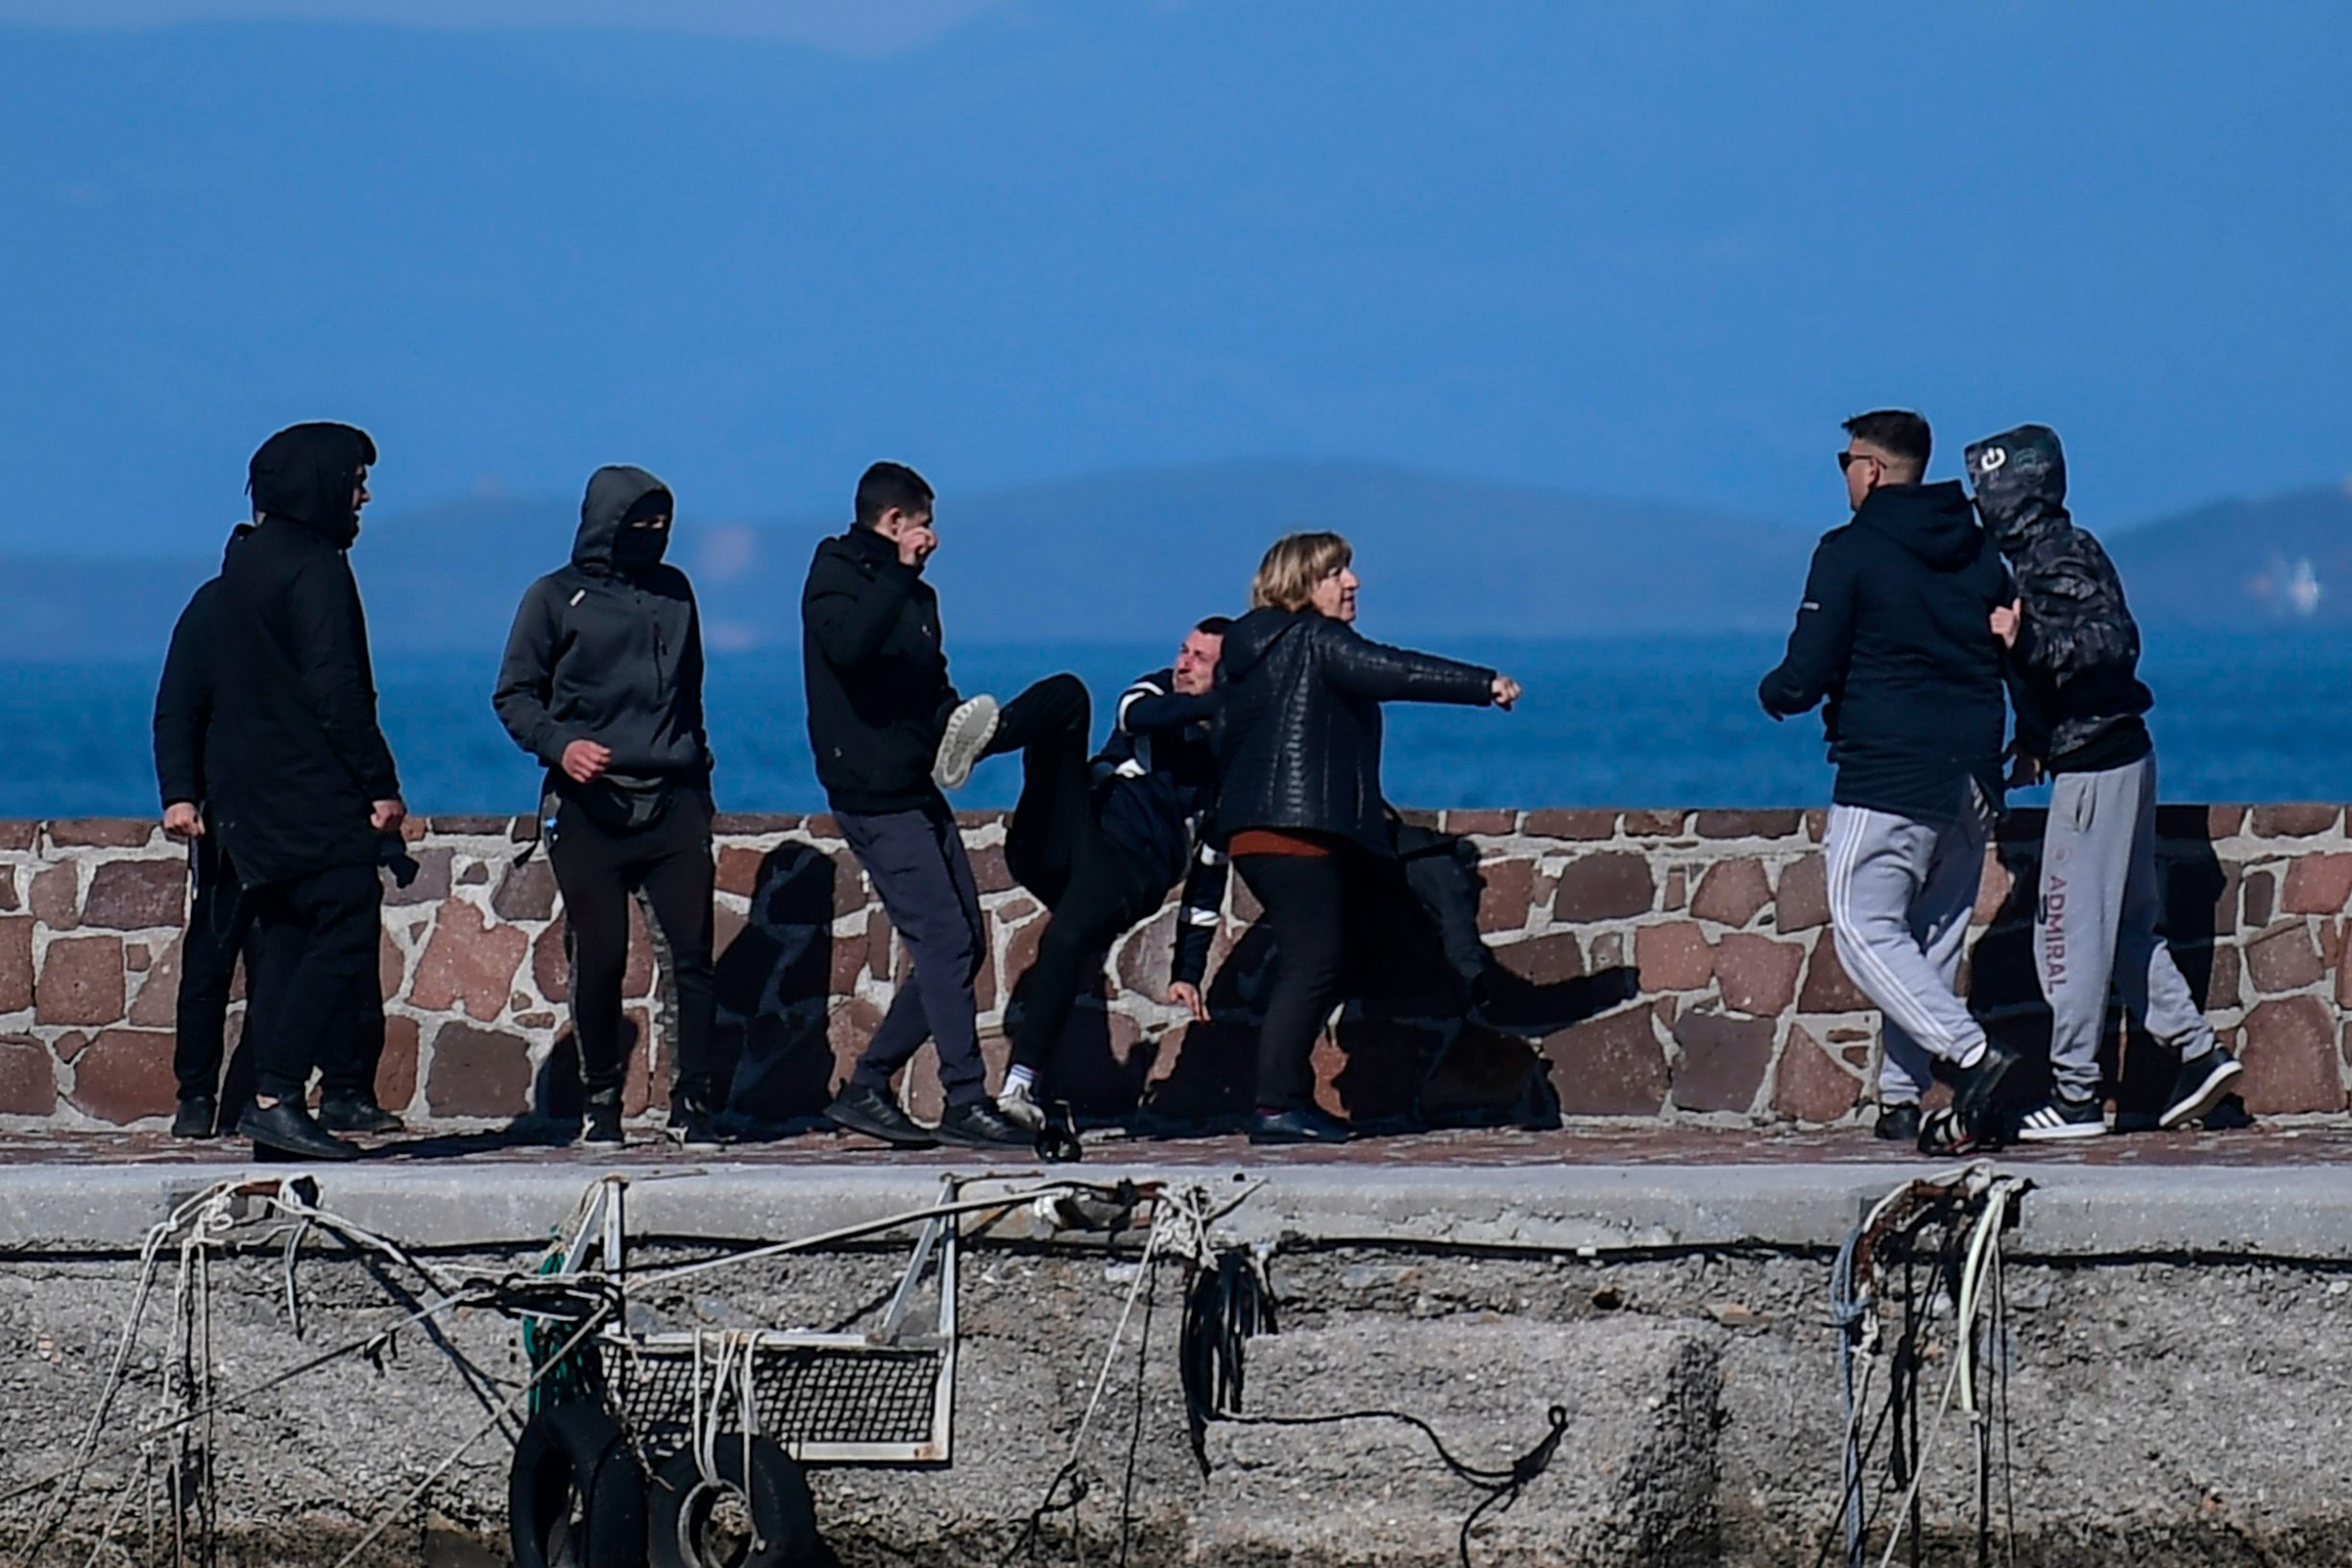 A journalist (C) receives help from a woman as he is attacked by residents who are trying to prevent migrants from disembarking on the Greek island of Lesbos, on March 1, 2020. - The United Nation called on March 1 for calm and urged states to refrain from